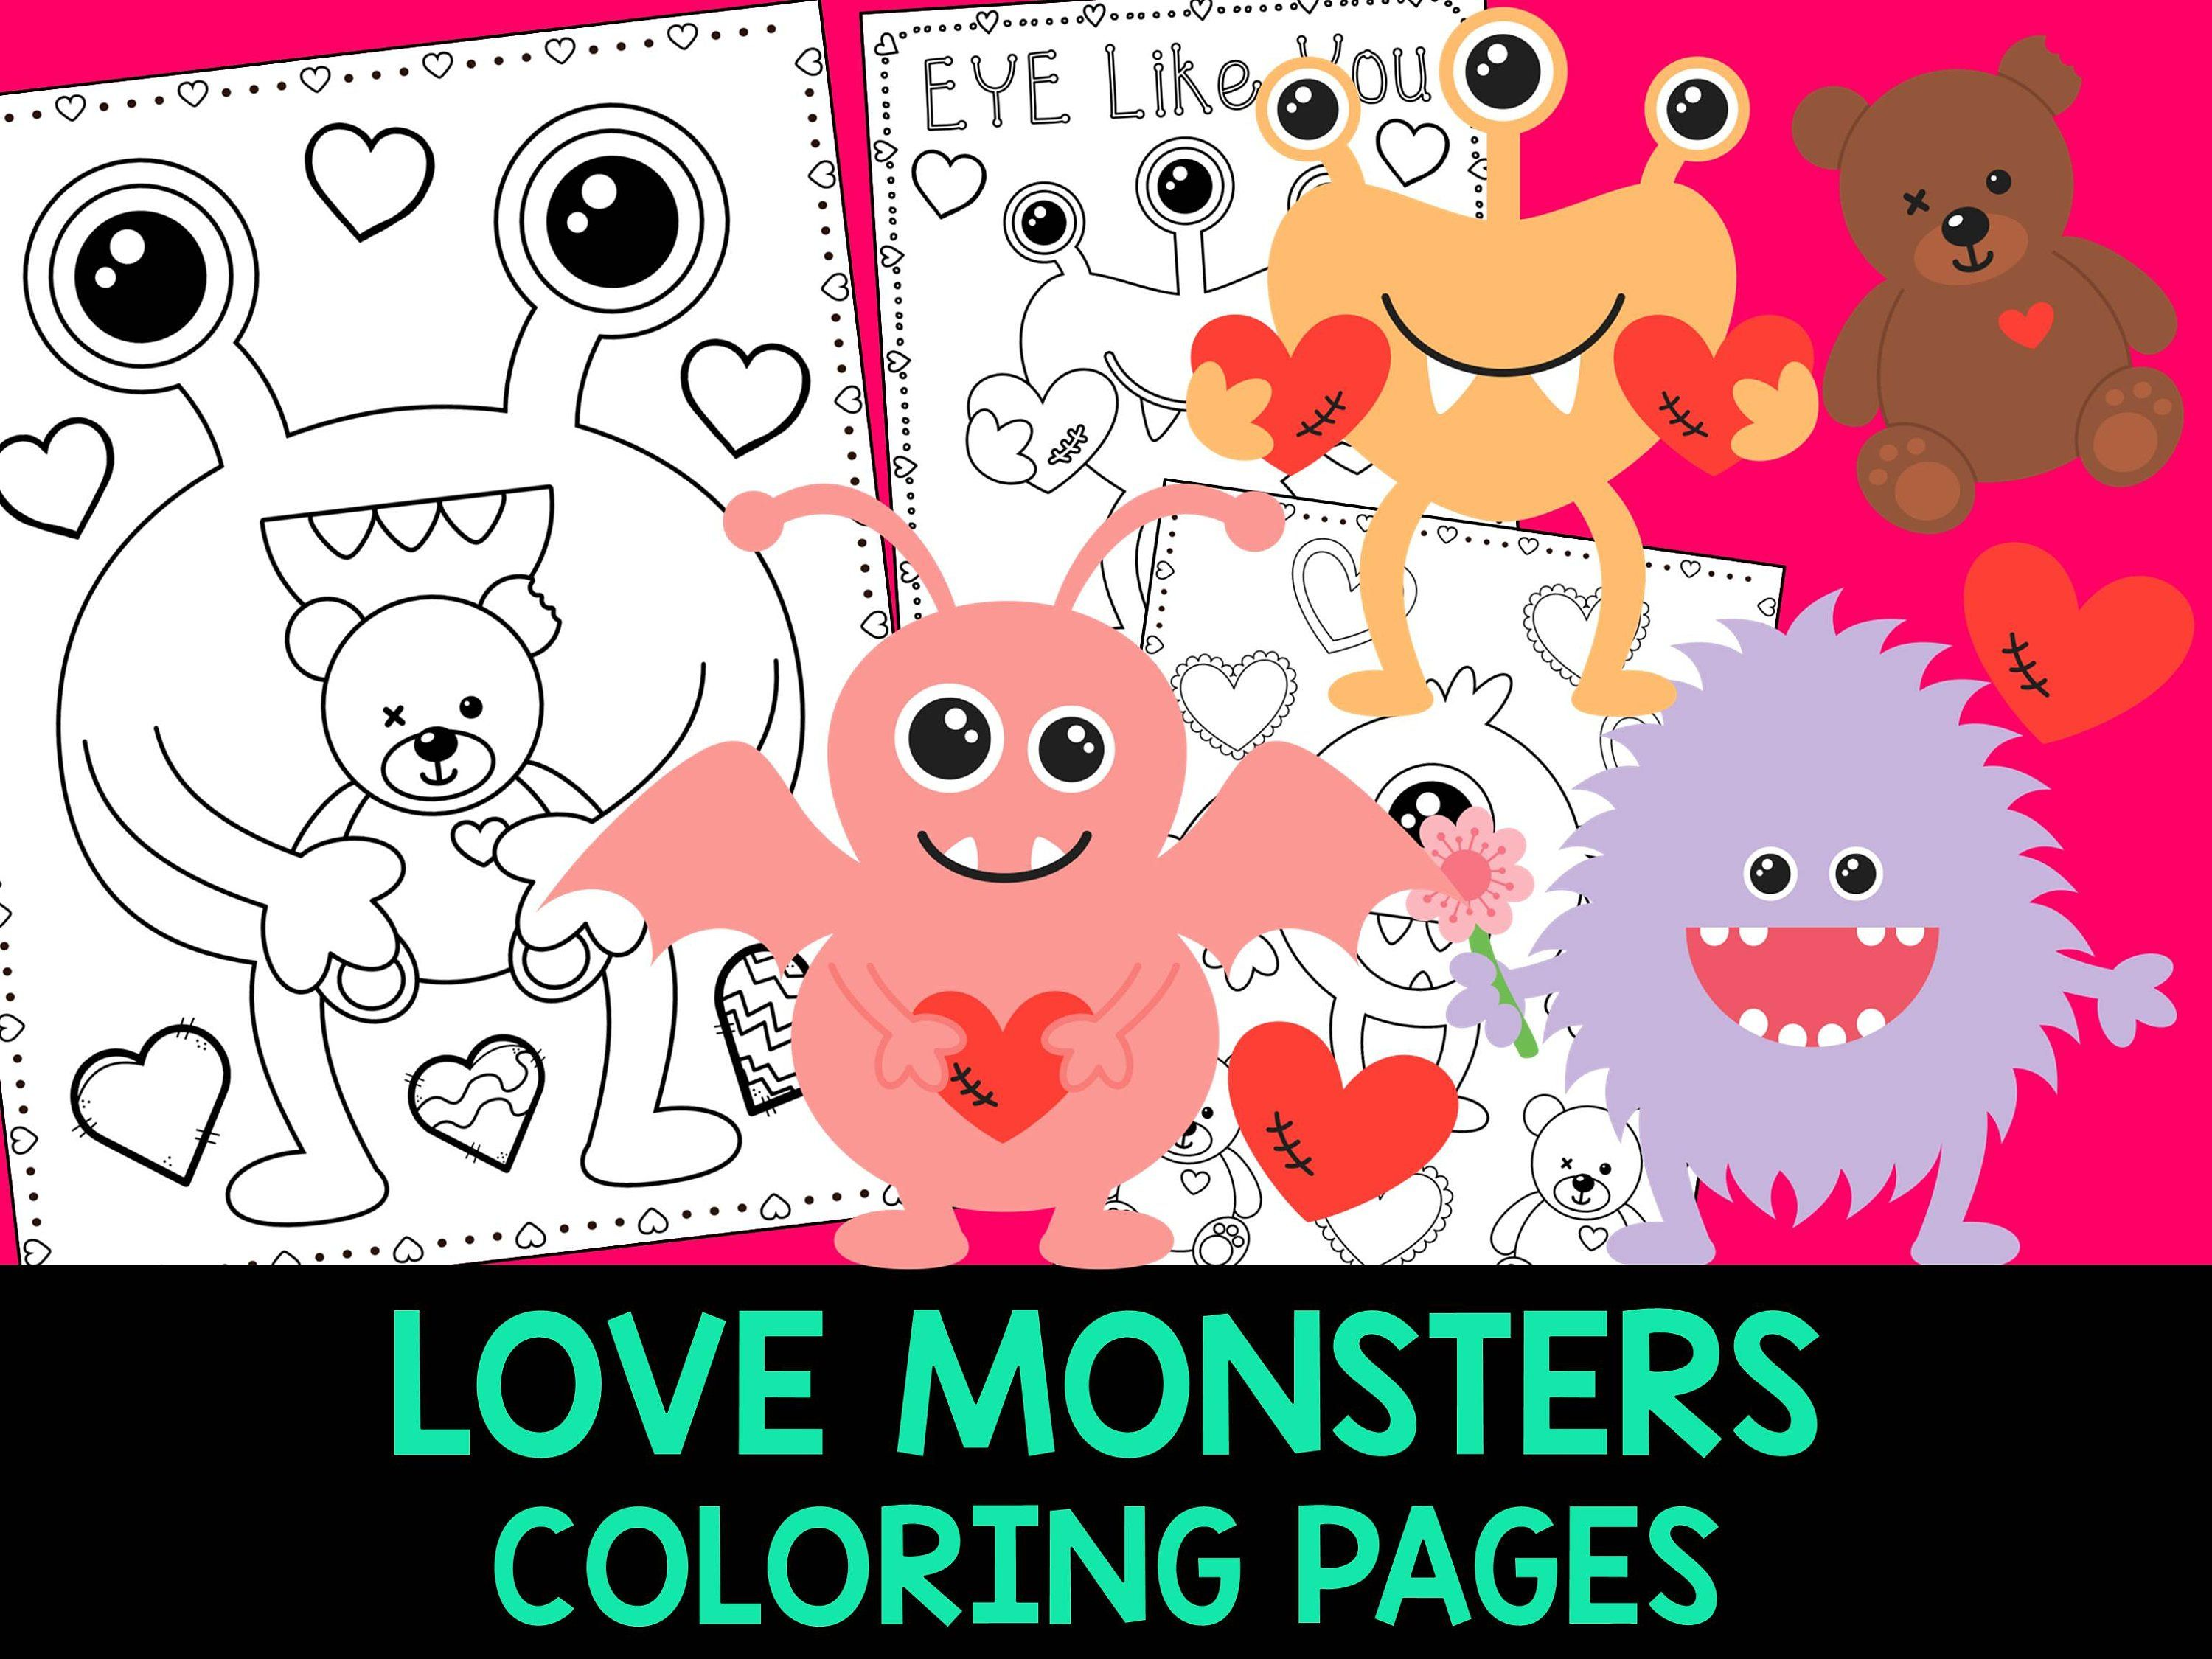 Love Monsters Coloring Book Pages The Crayon Crowd Etsy Monster Coloring Pages Love Coloring Pages Valentine Coloring Pages